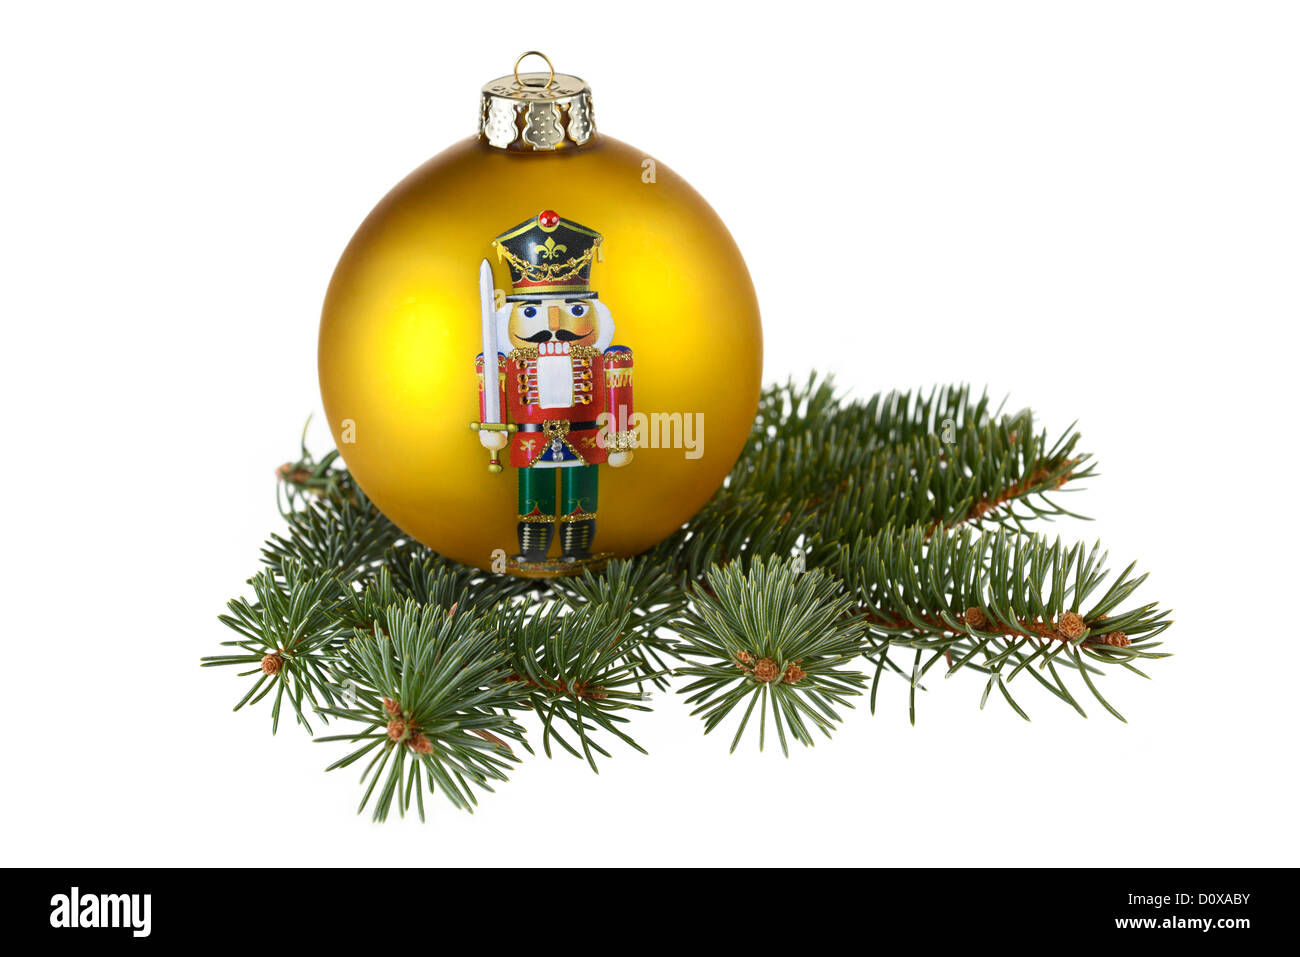 Christmas Ornament, Ball - Stock Image